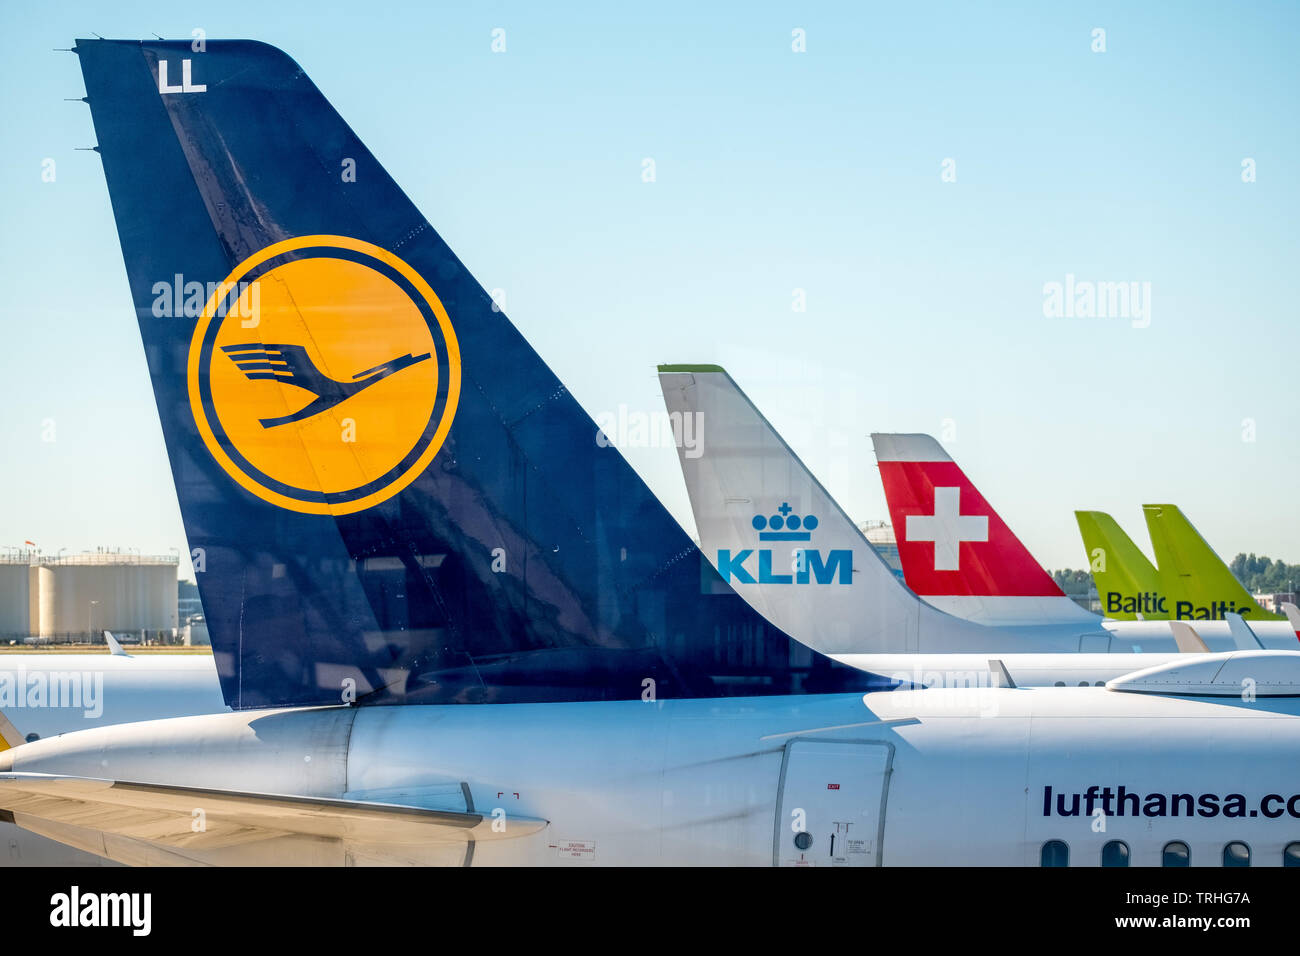 Airfoils of Lufthansa, KLM, Swiss Air and Baltic Air at Amsterdam Schiphol Airport, Noord-Holland, Netherlands, Europe, Schiphol, NLD, travel, tourism - Stock Image